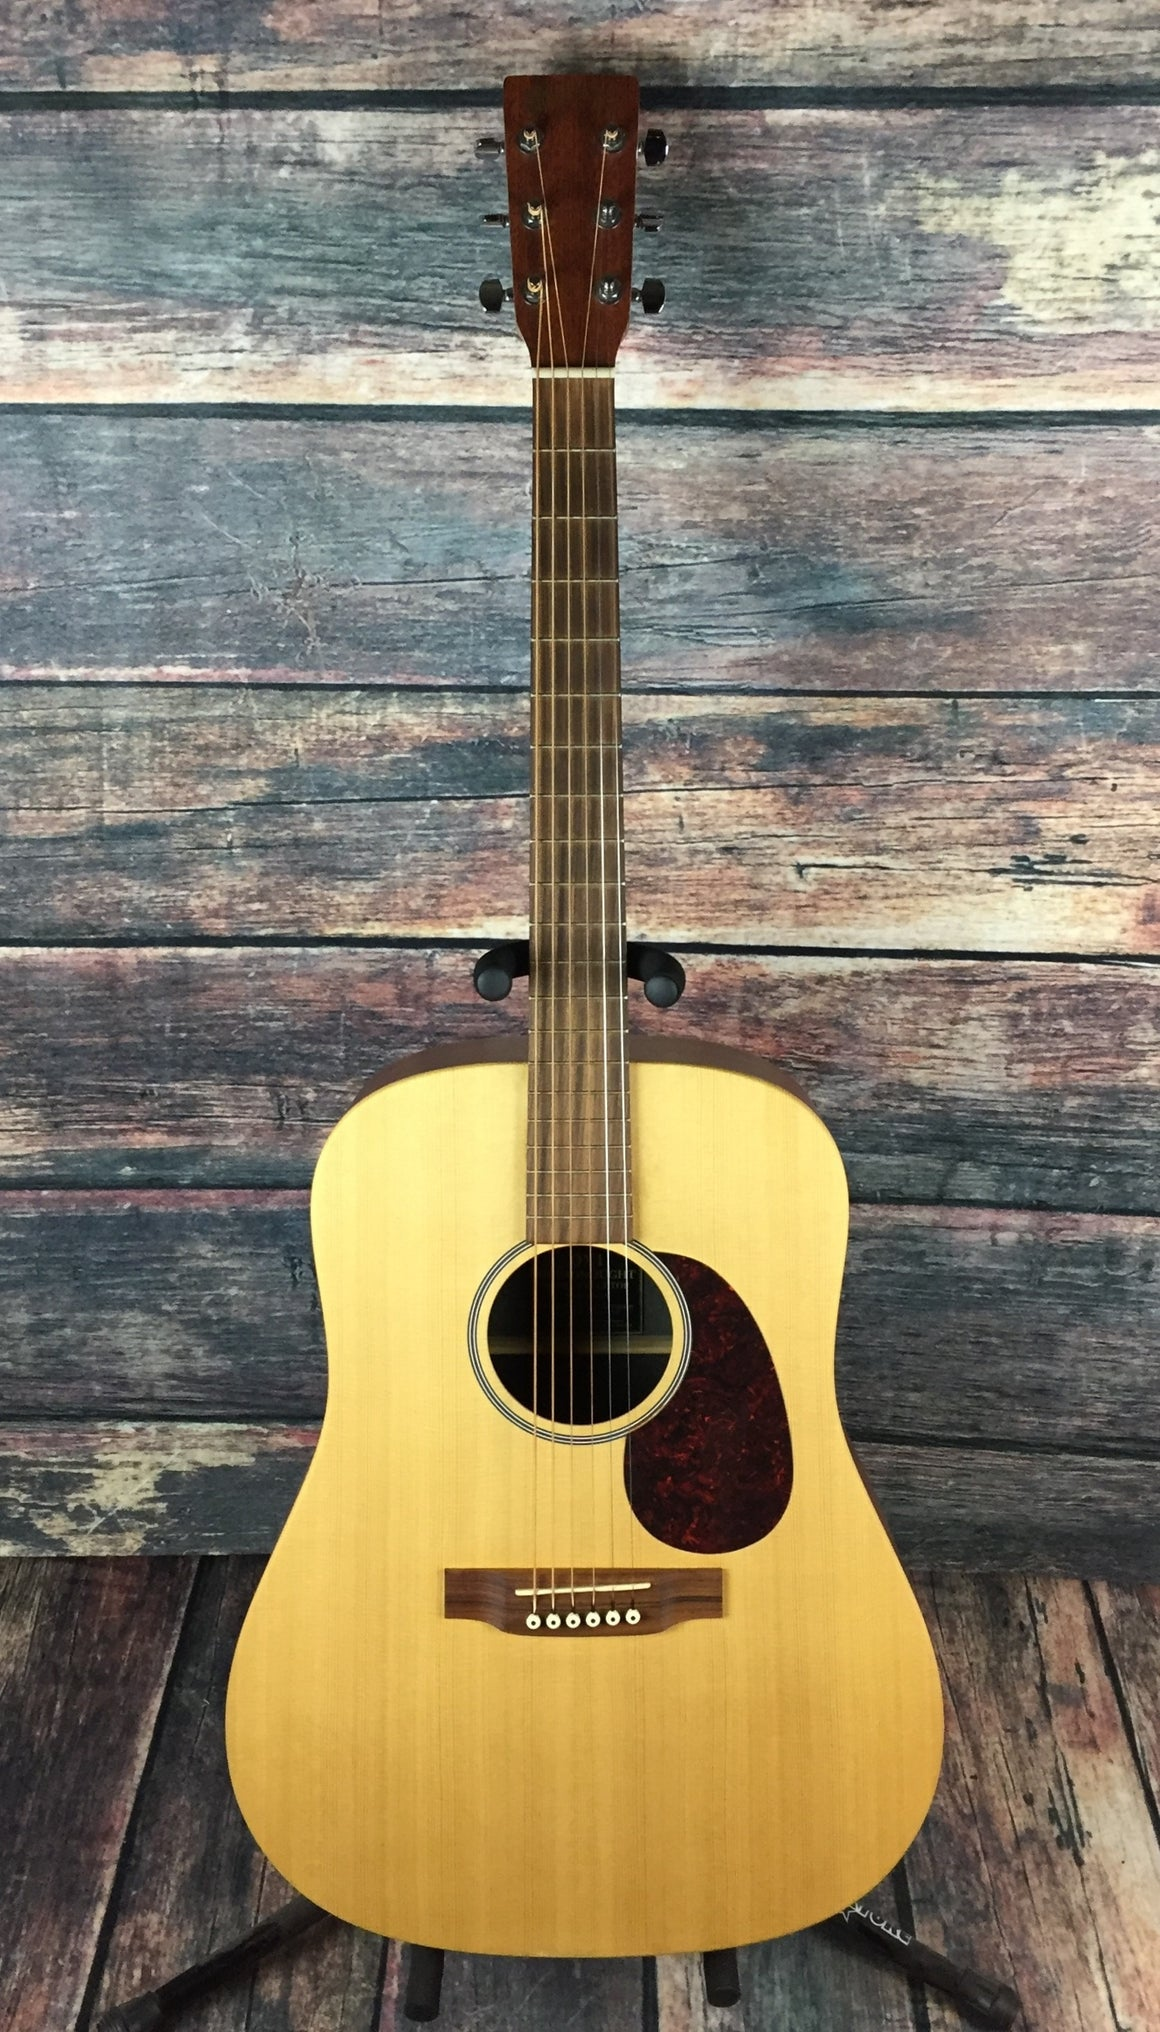 C.F. Martin Guitars Acoustic Guitar Used Martin 2004 Right Handed USA DX1 Acoustic Guitar with Hard Shell Case